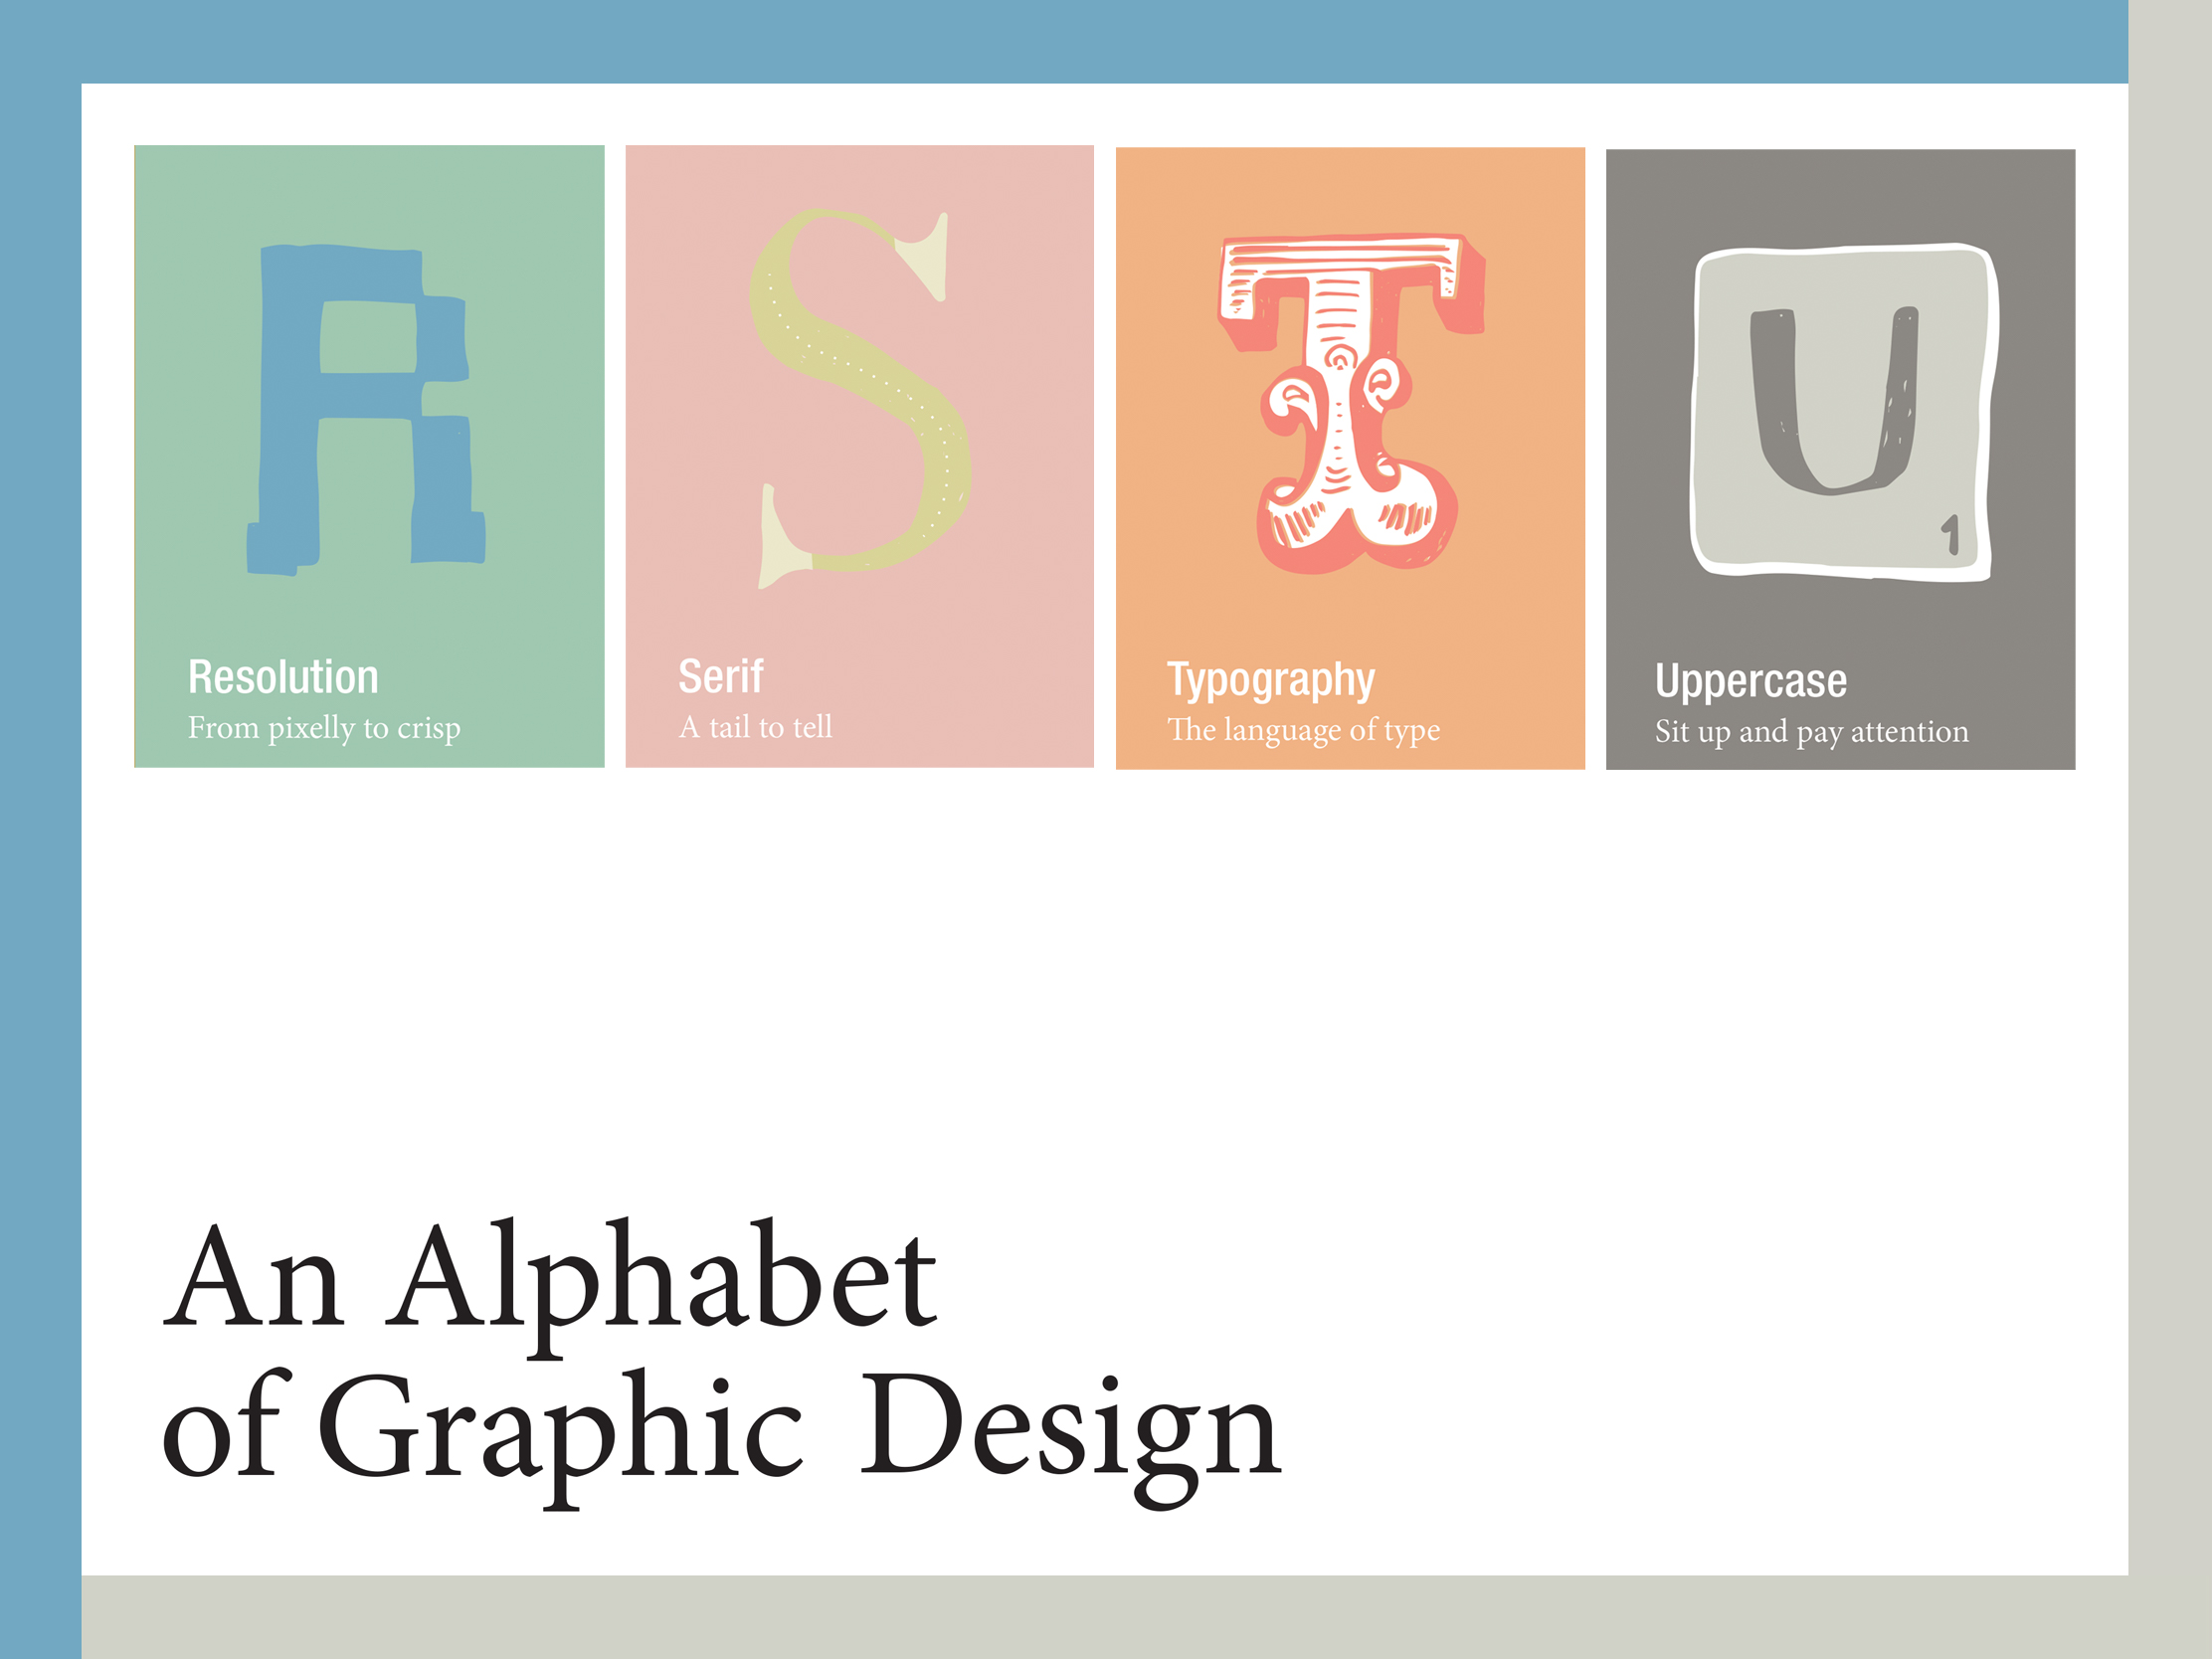 Resolution, Serifs, Typography and Uppercase, all themes in the October newsletter